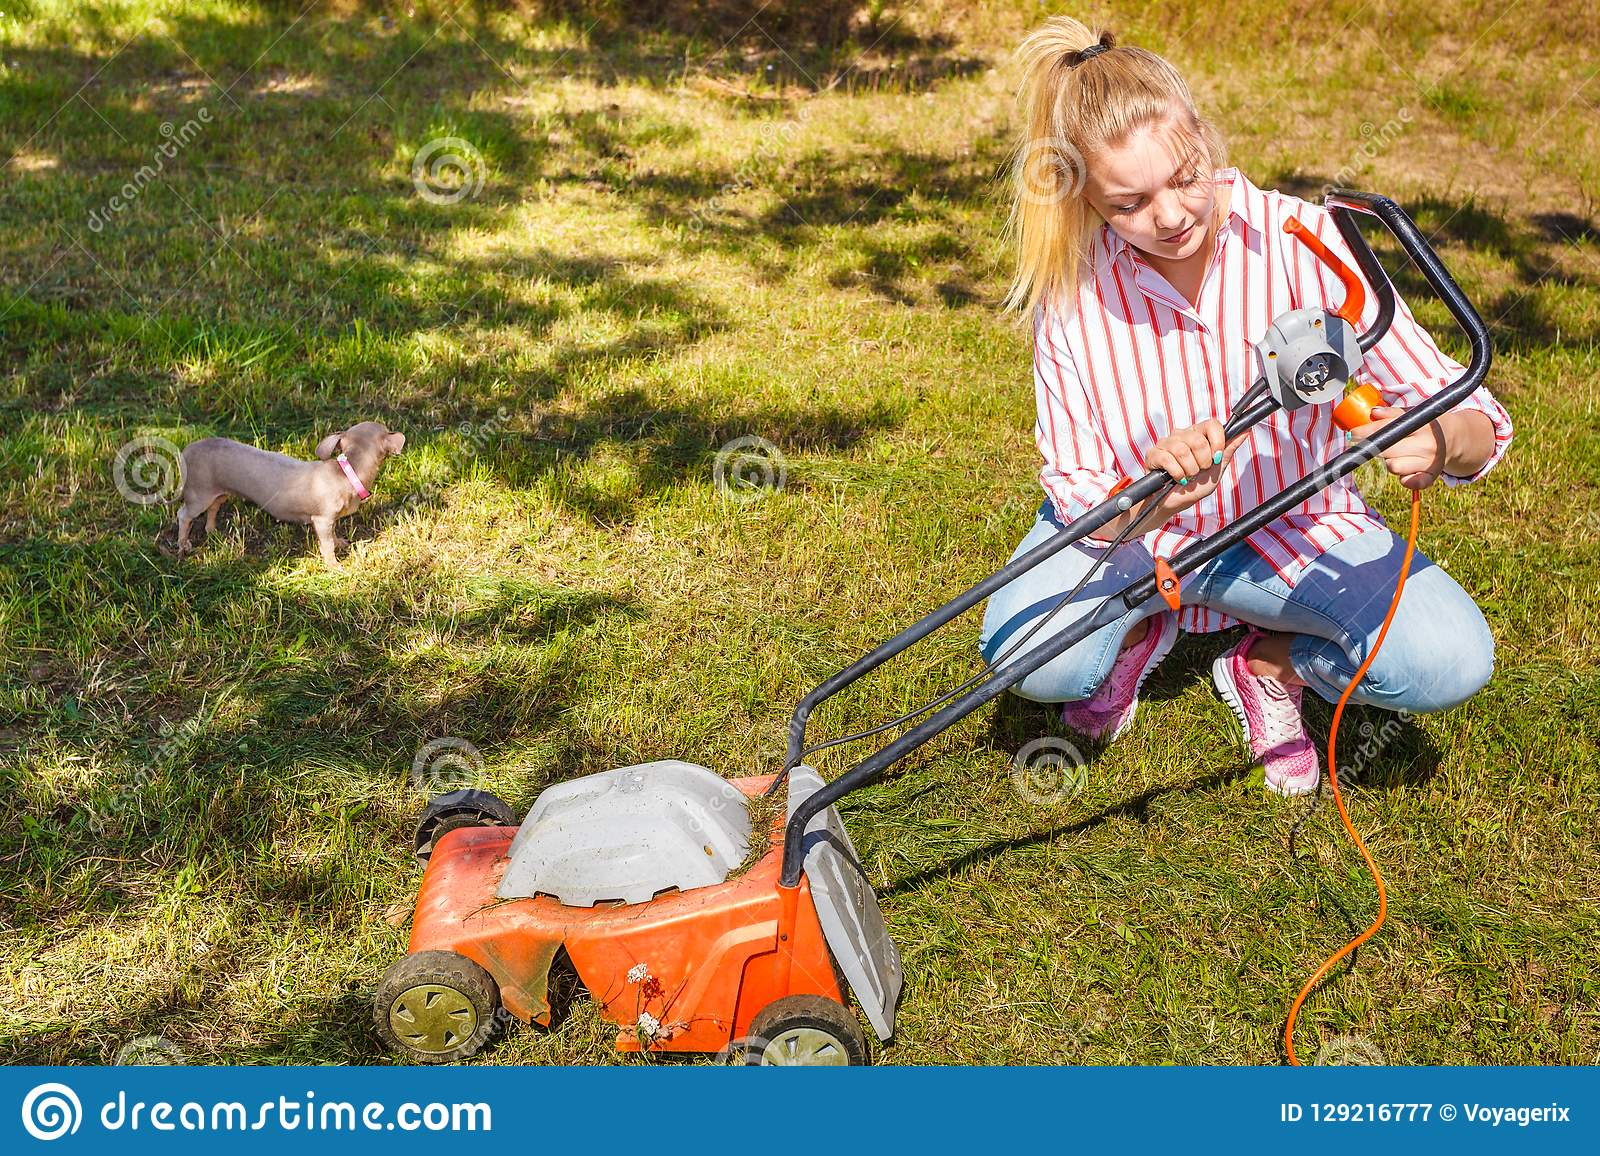 Senior Woman Mowing Lawn - Free Stock Images & Photos